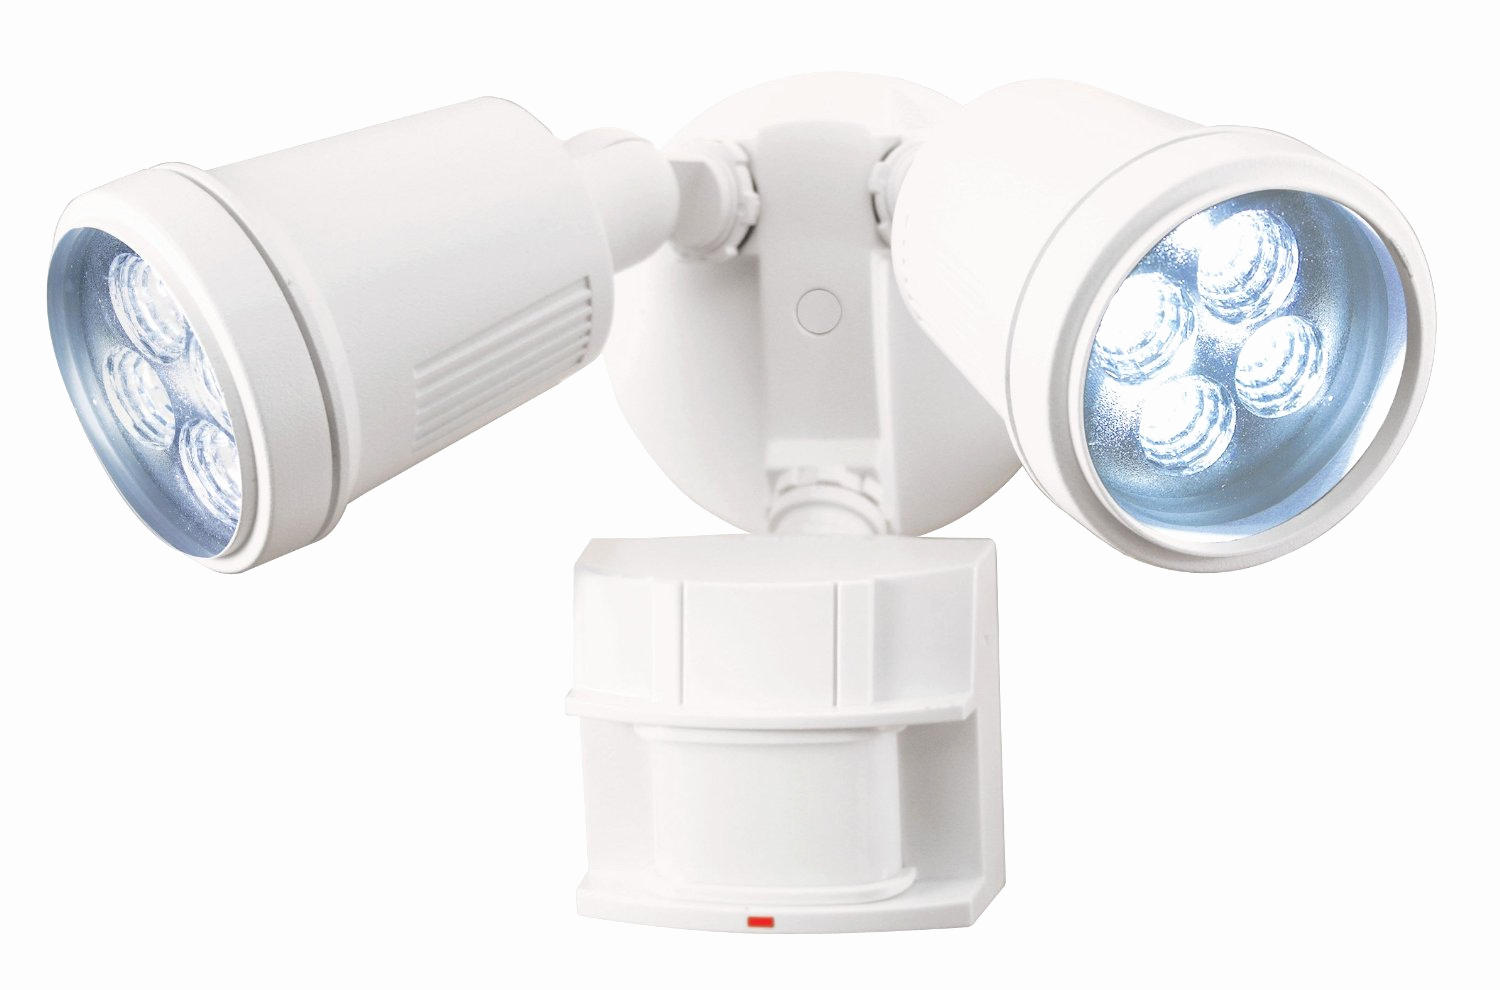 Surging Led Outdoor Flood Lights Motion Sensor Light Bulbs Best Of intended for size 1500 X 990